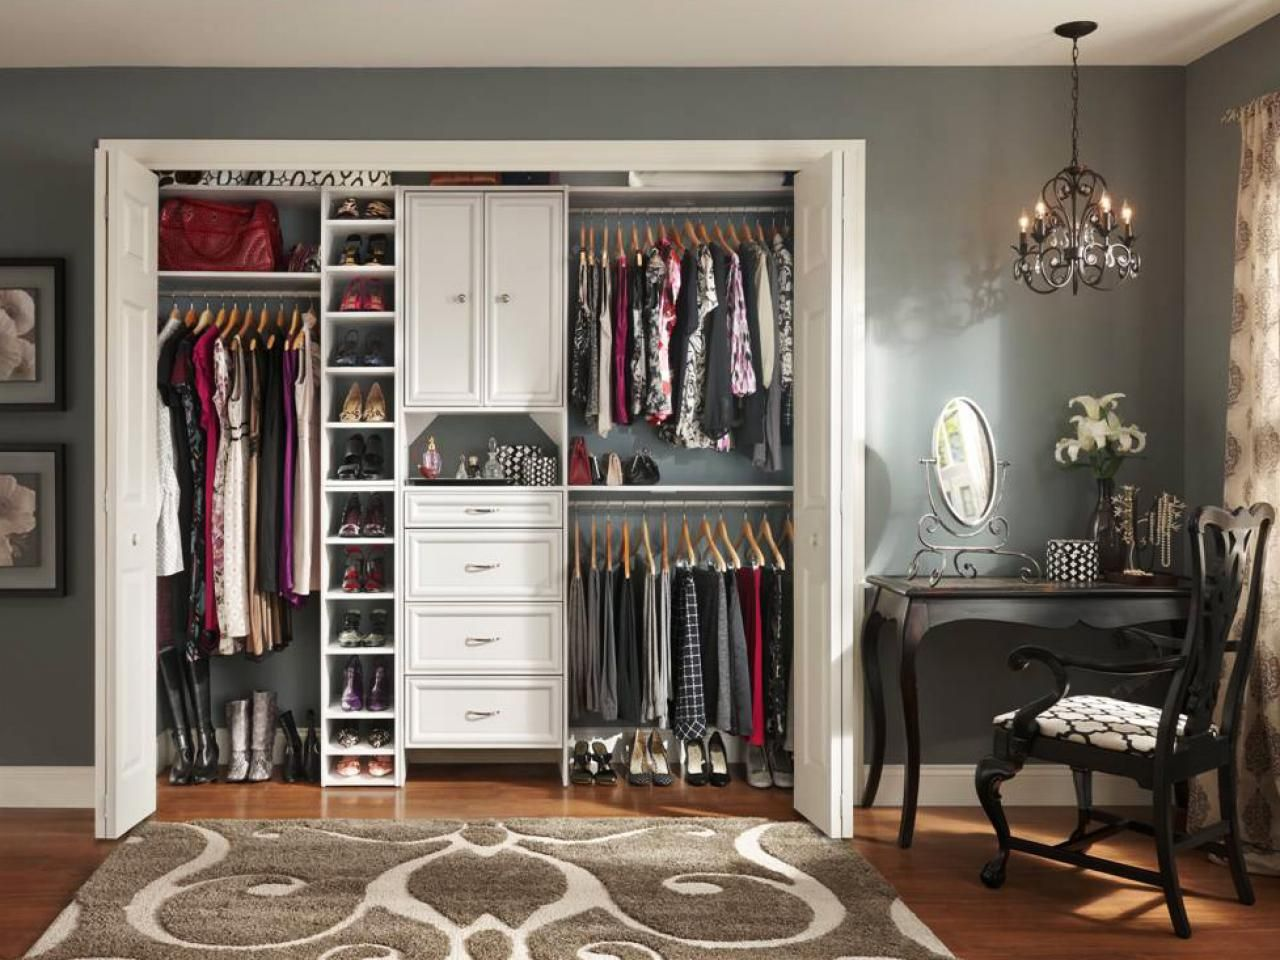 Superior Unique Closet Organization Ideas Part - 7: Stunning Small Closet Organization Ideas - Https://midcityeast.com/stunning-